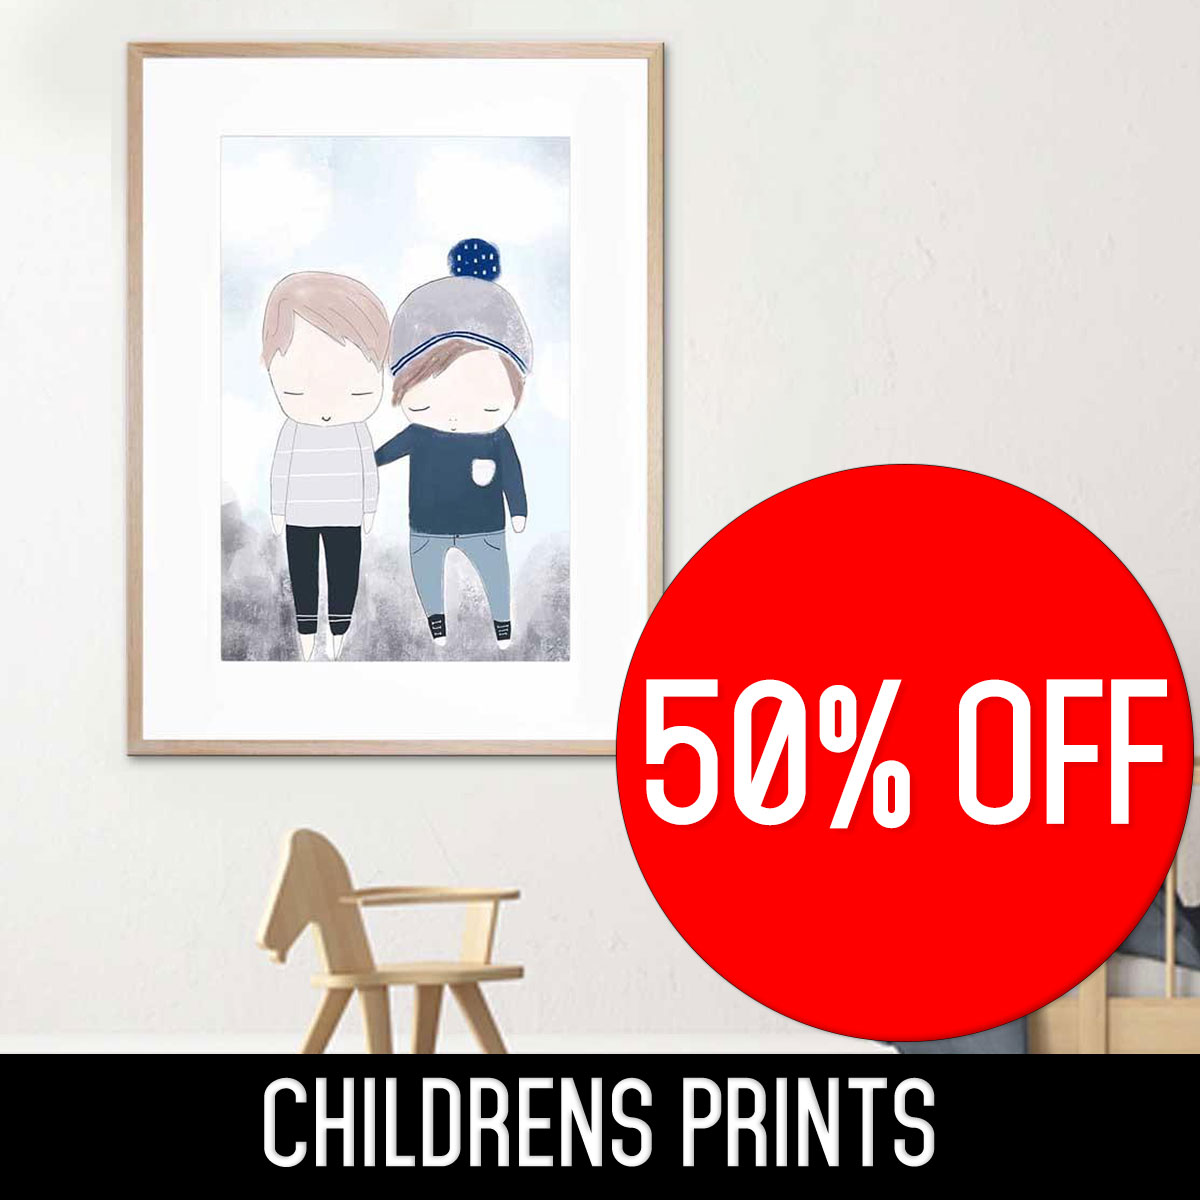 View All Childrens Prints